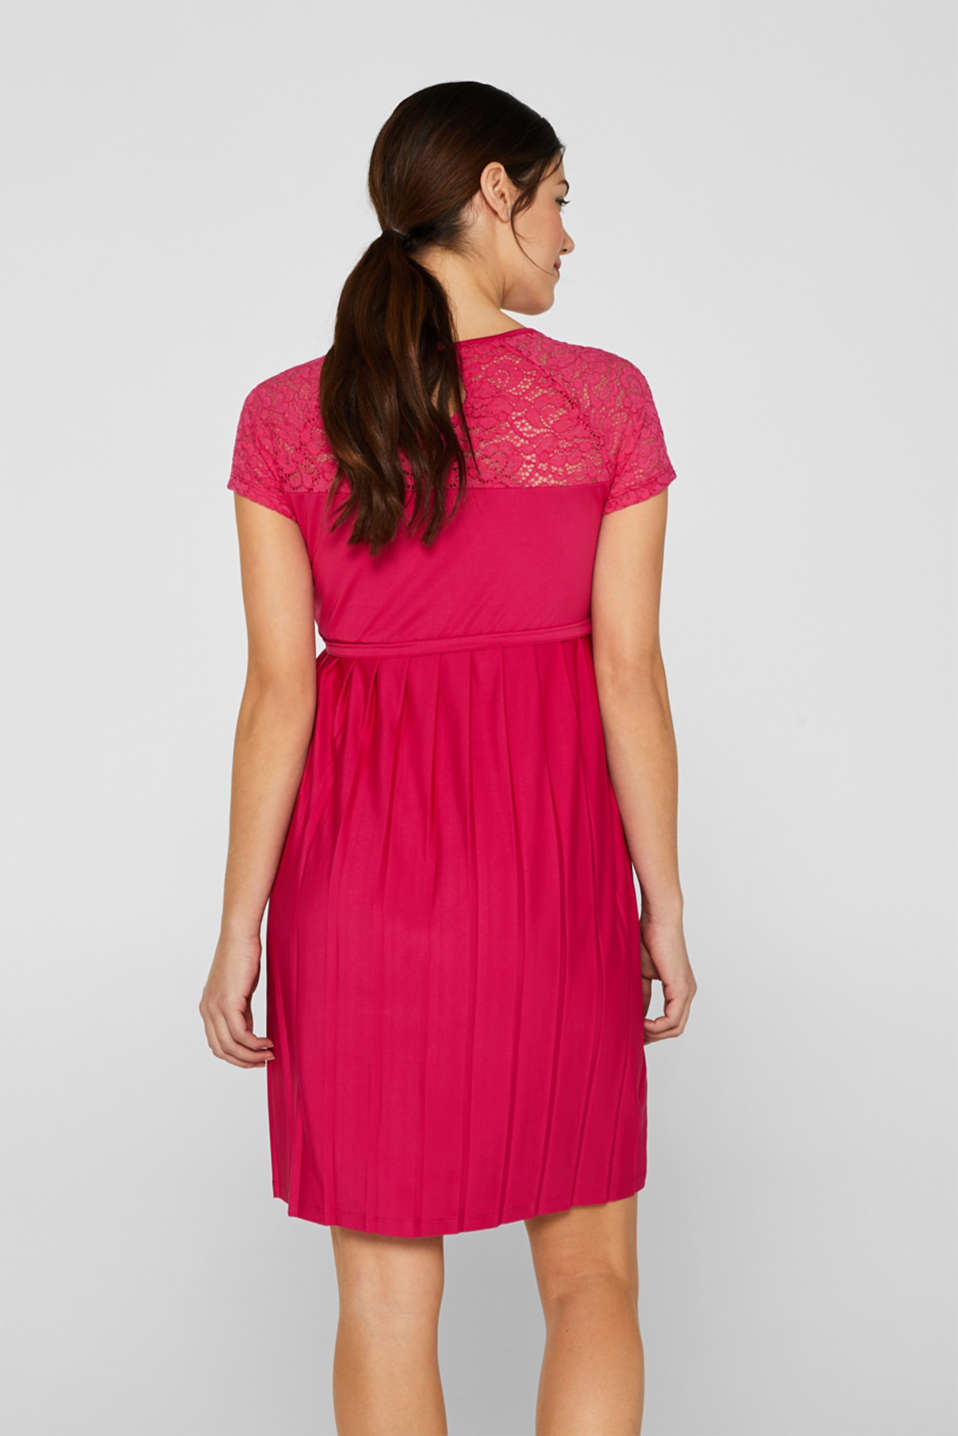 Lace-trimmed dress with a pleated skirt, LCPINK FUCHSIA, detail image number 2